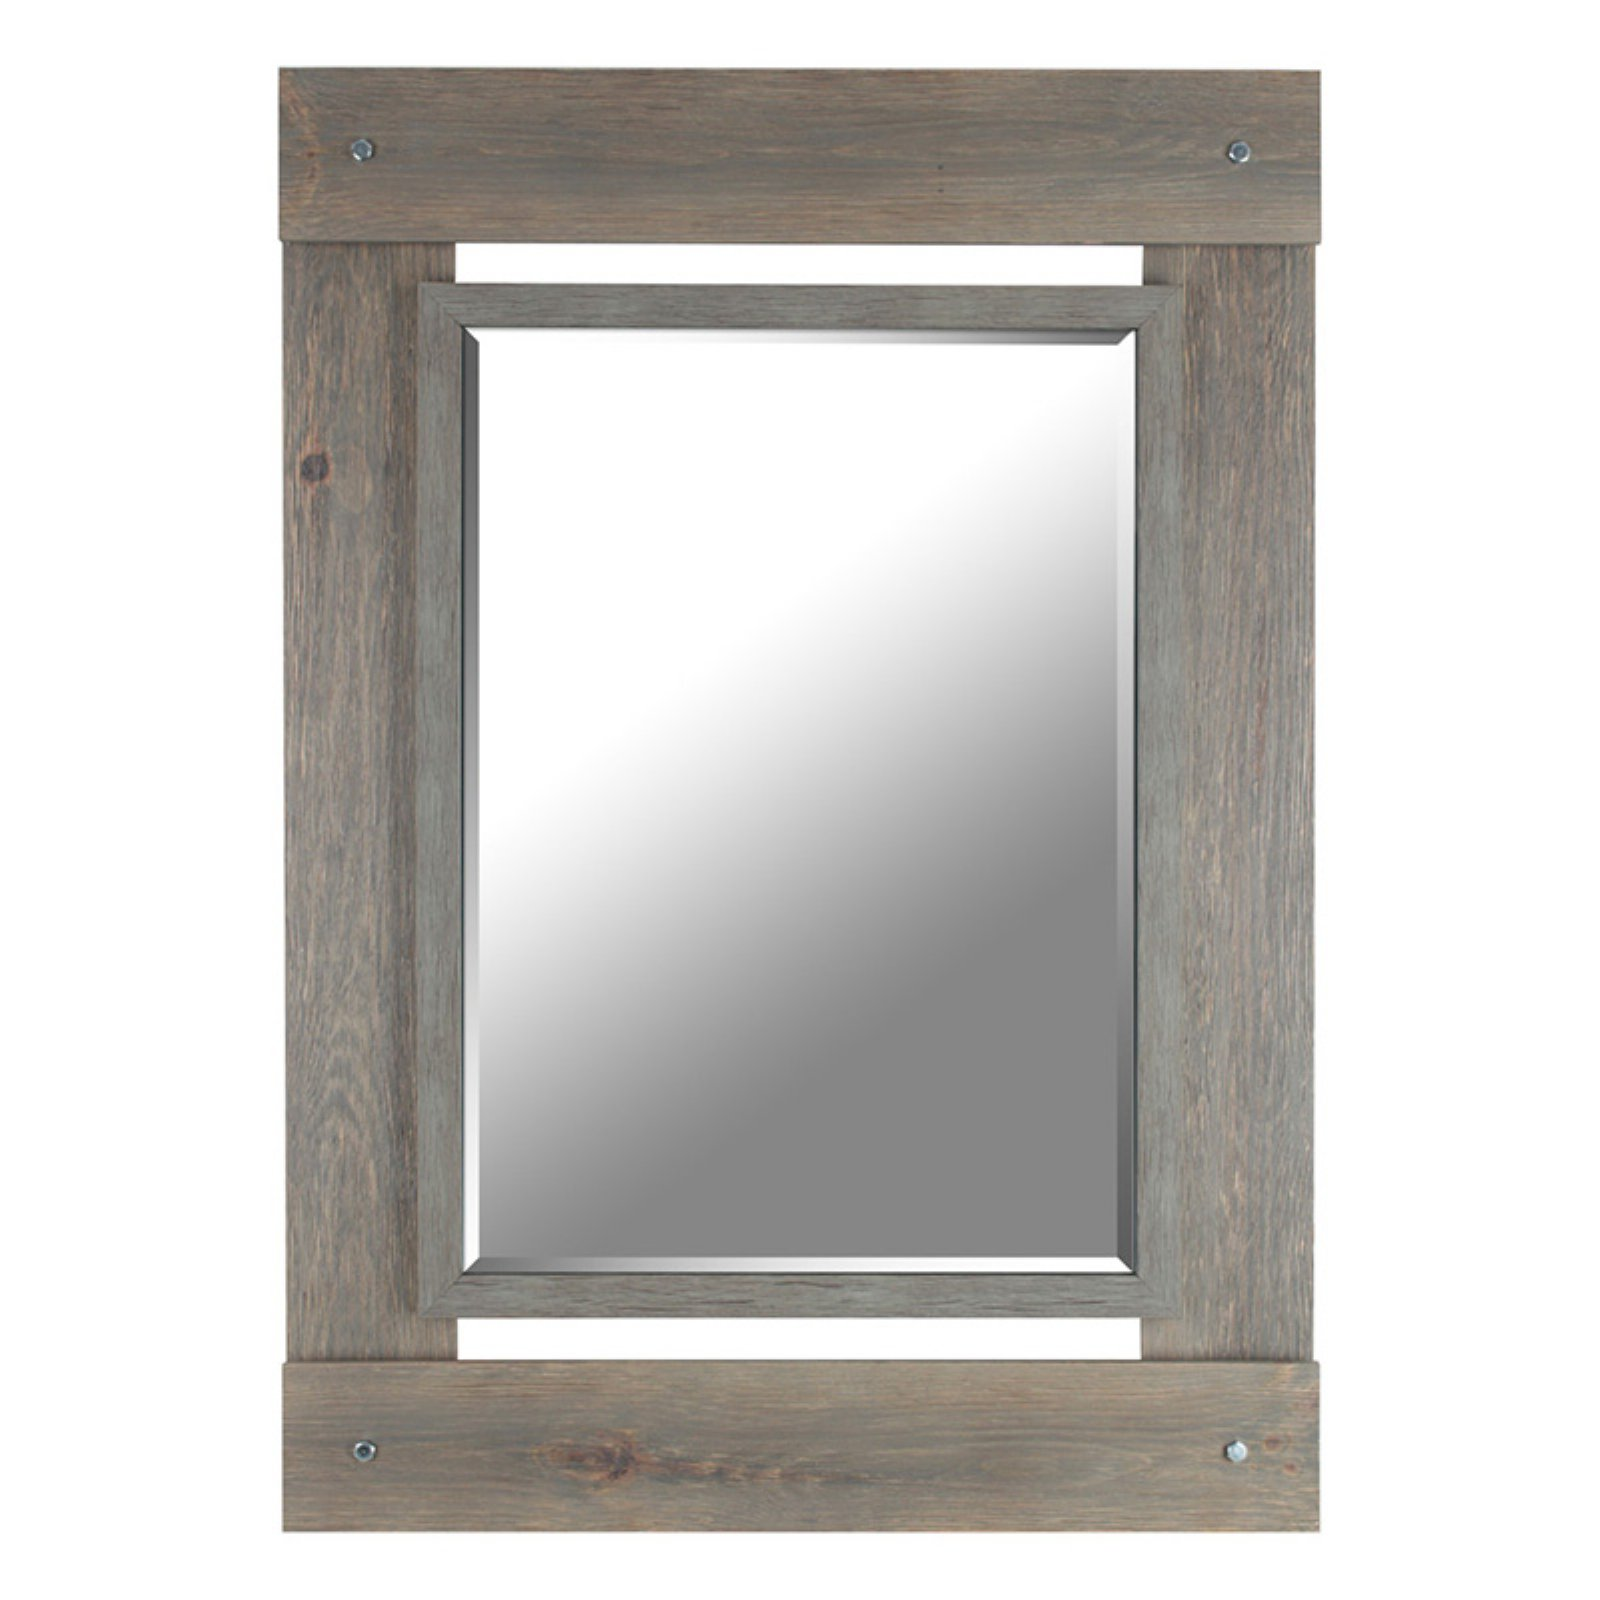 Mirrorize Canada Real Wood Beveled Mirror 30W x 43H in